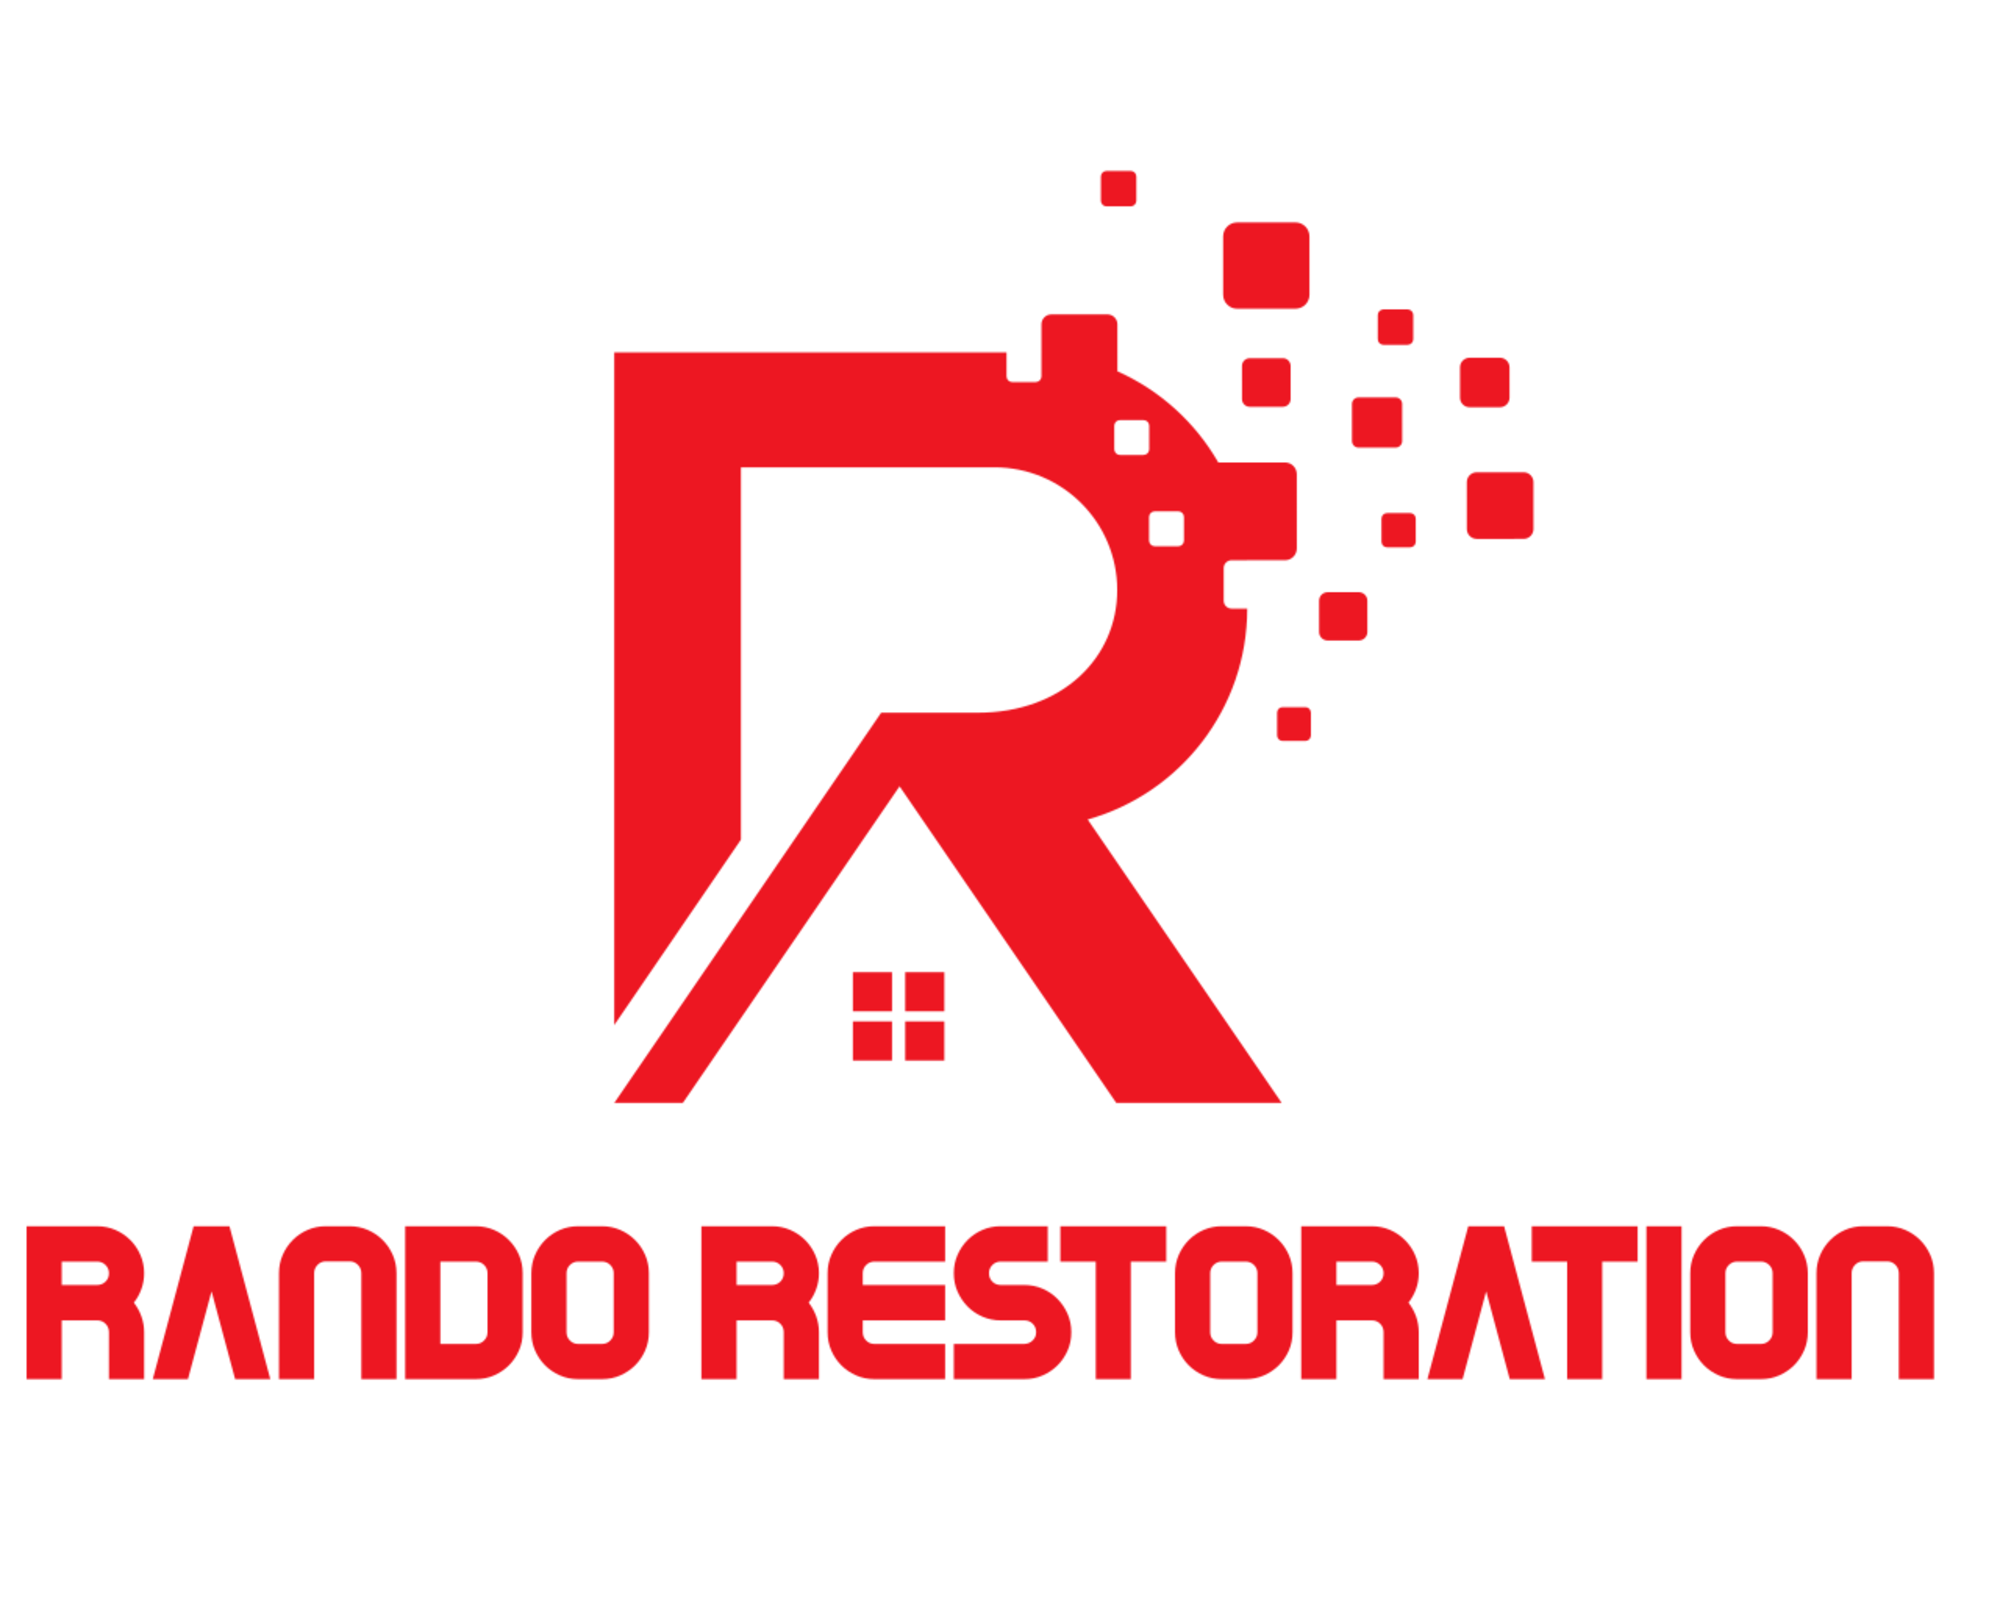 Rando Restoration Has Been Offering Cleanup and Restoration Services in Joliet, IL for Over 35 Years 1